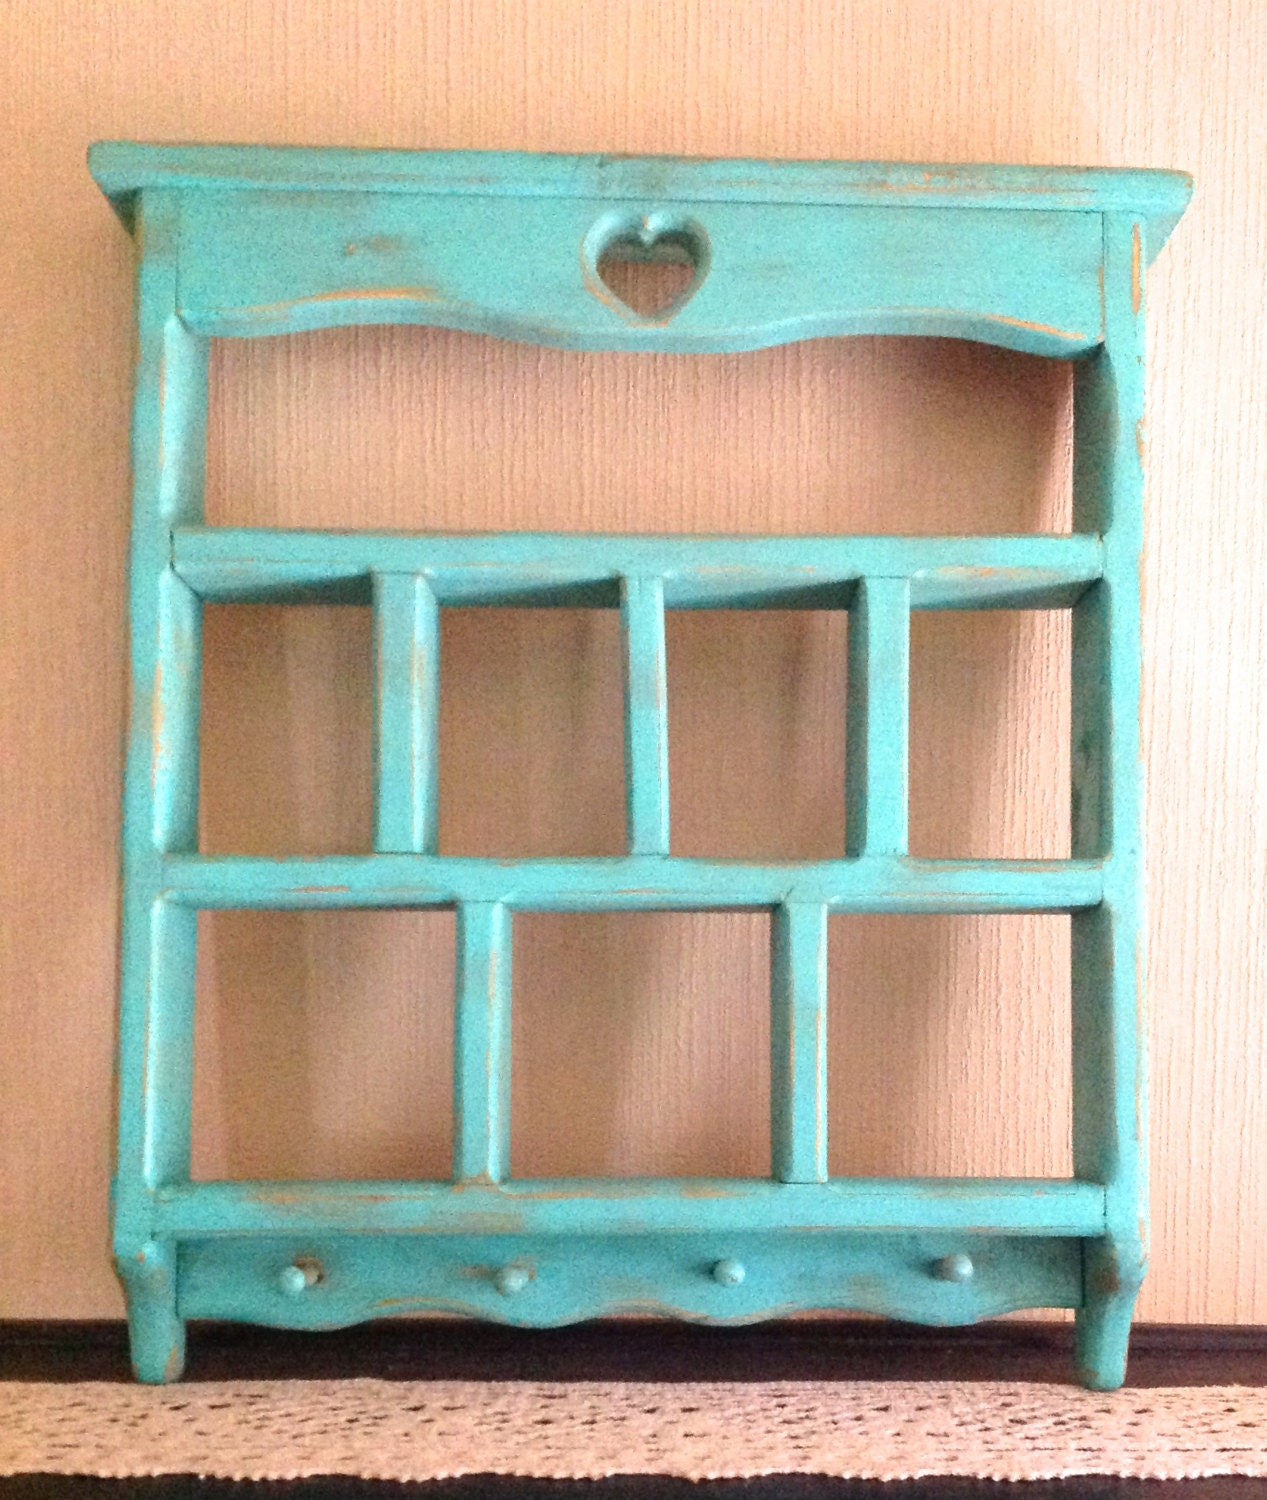 Marvelous photograph of Beach Mint Green Vintage Cubby Shelf / Wooden by ReFeatherYourNest with #AC561F color and 1267x1500 pixels